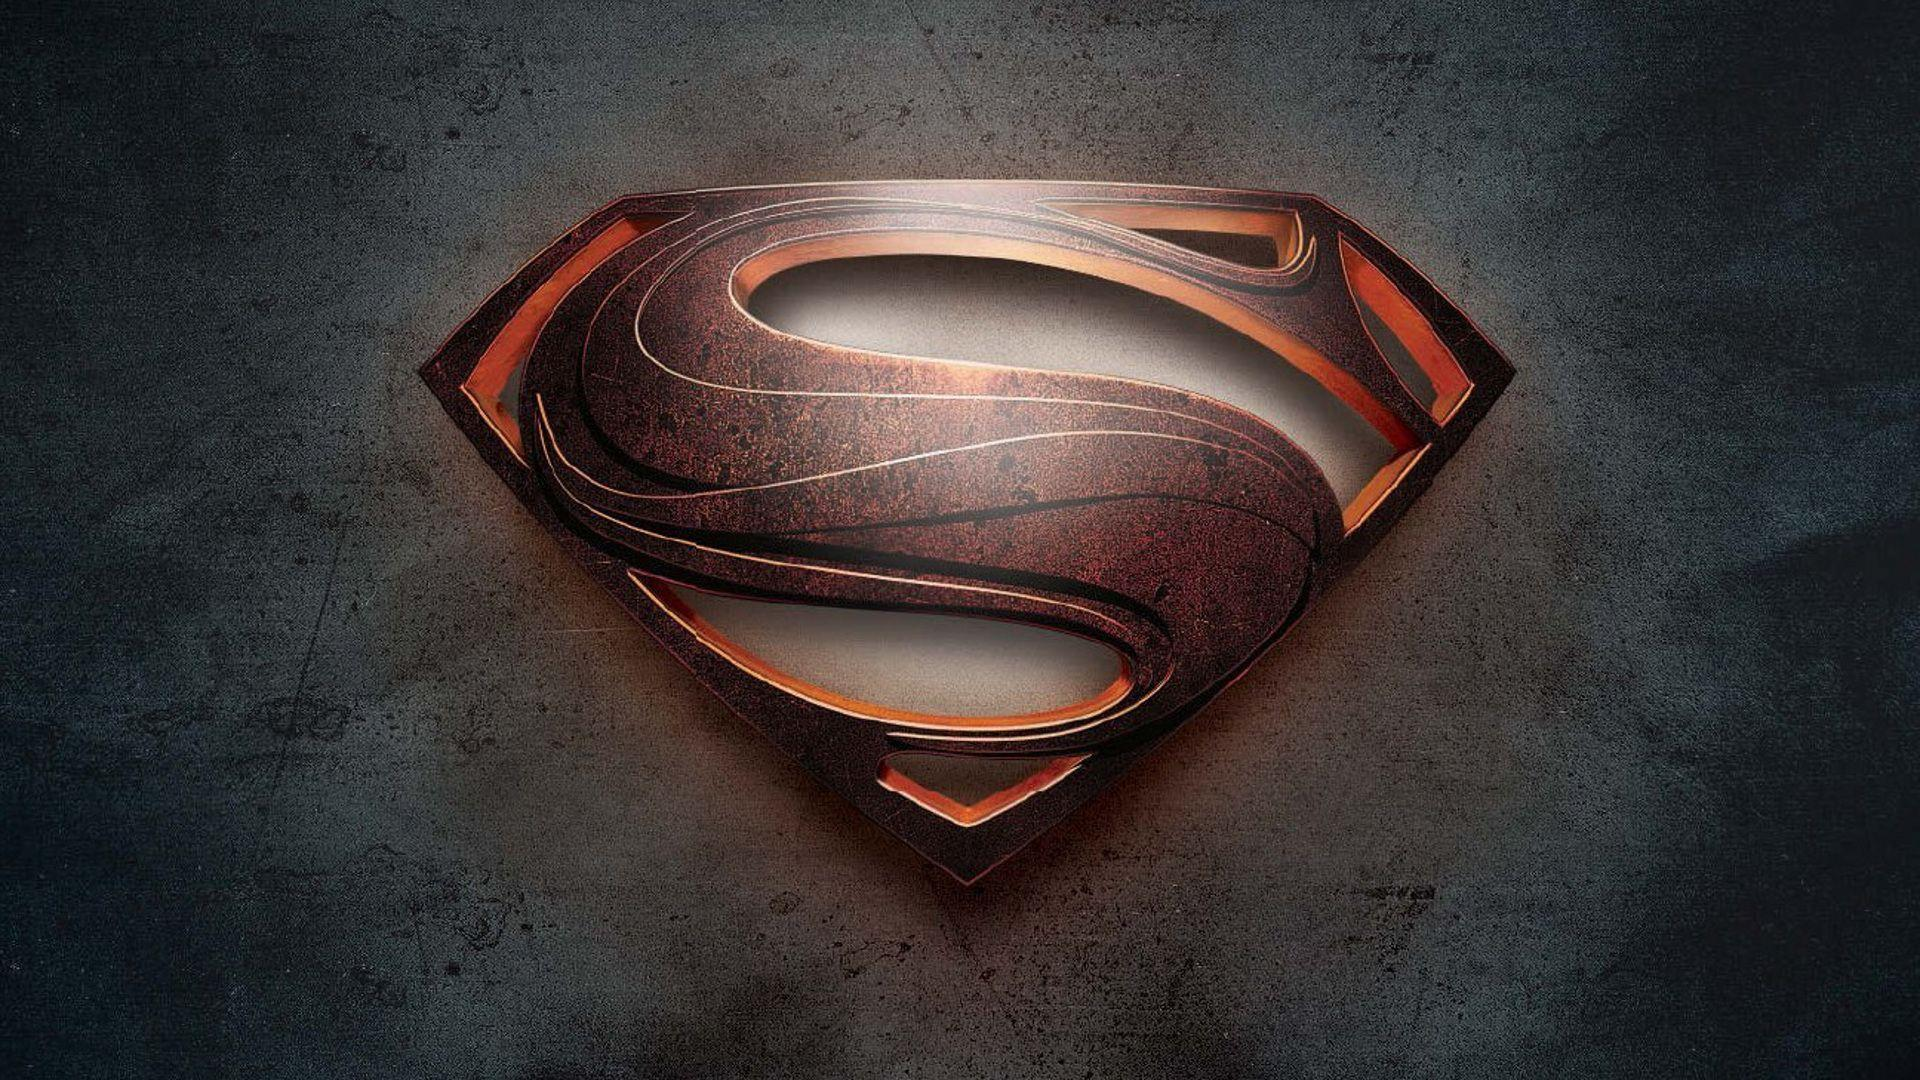 man of steel movie wallpapers http://www.nicewallpapers.in